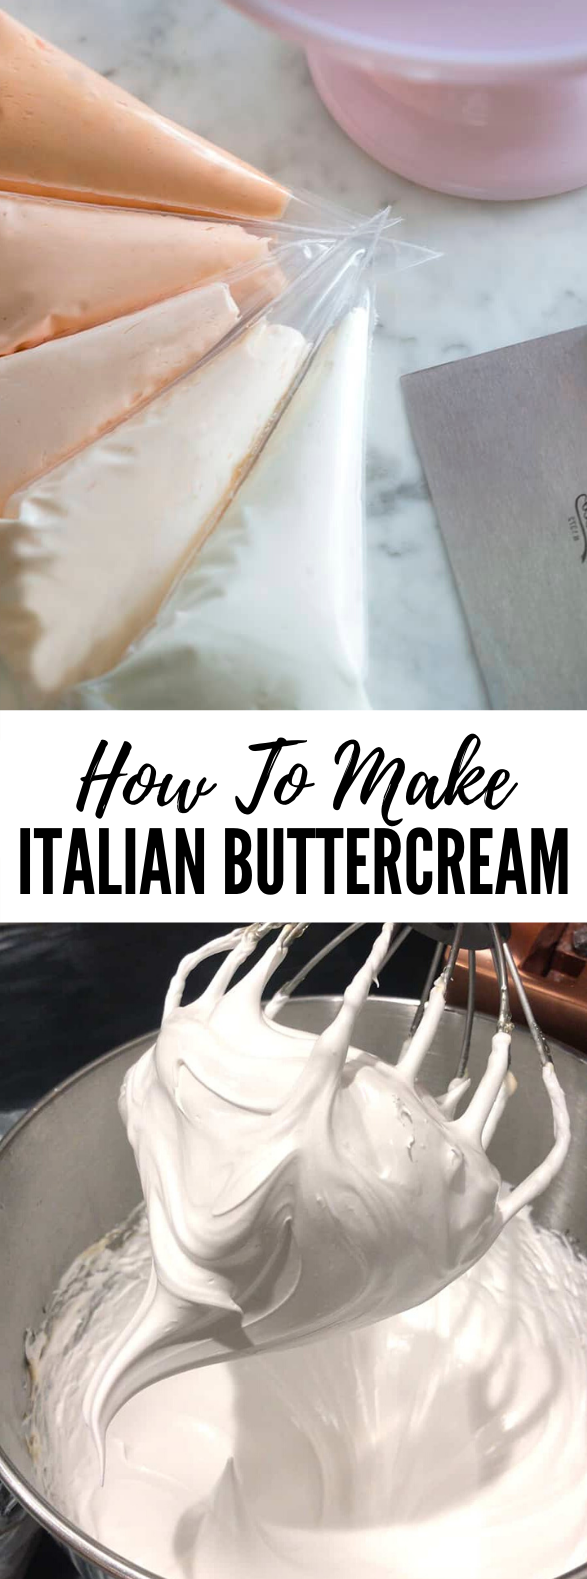 How To Make Italian Buttercream #desserts #frosting